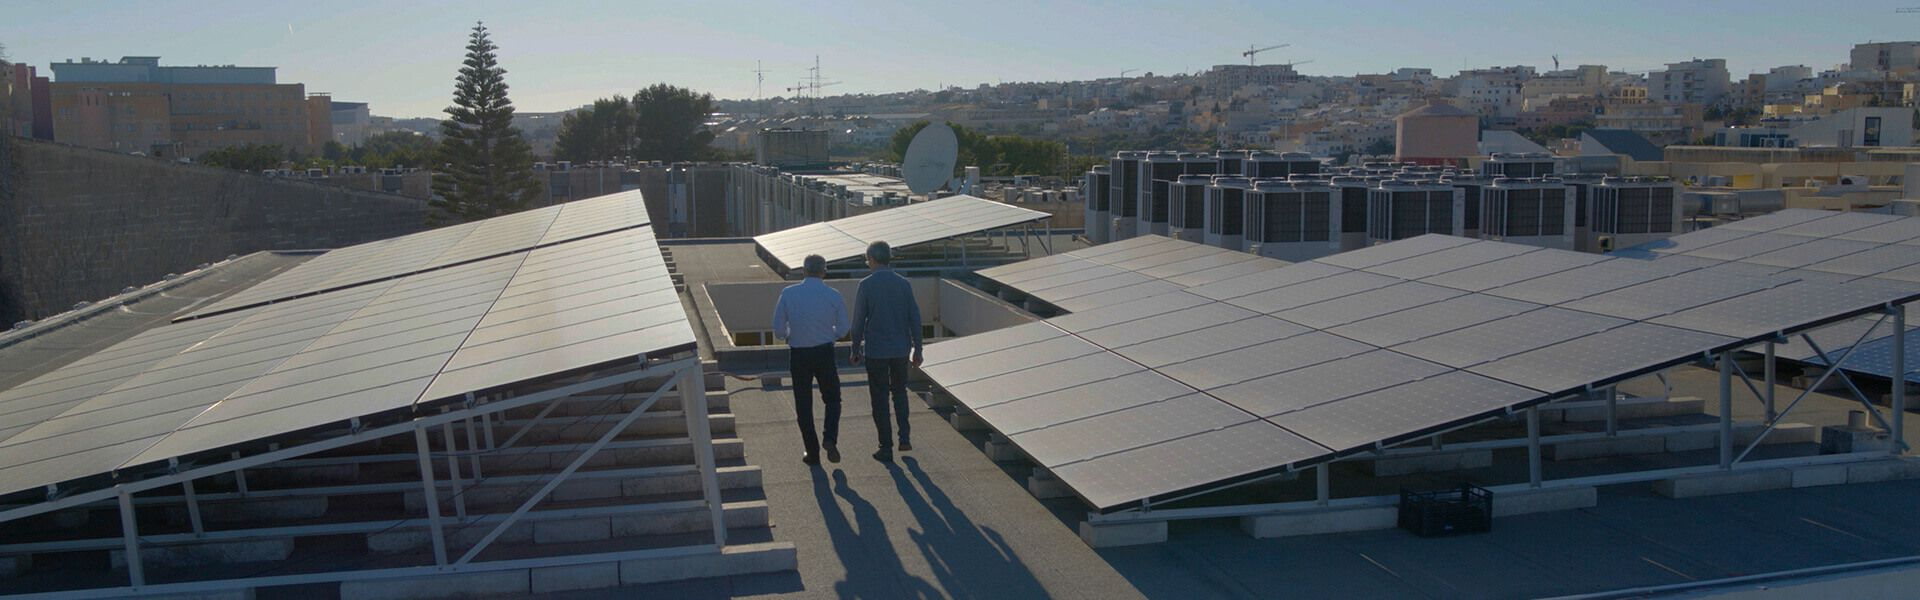 Rooftop with Solar Panels Malta University